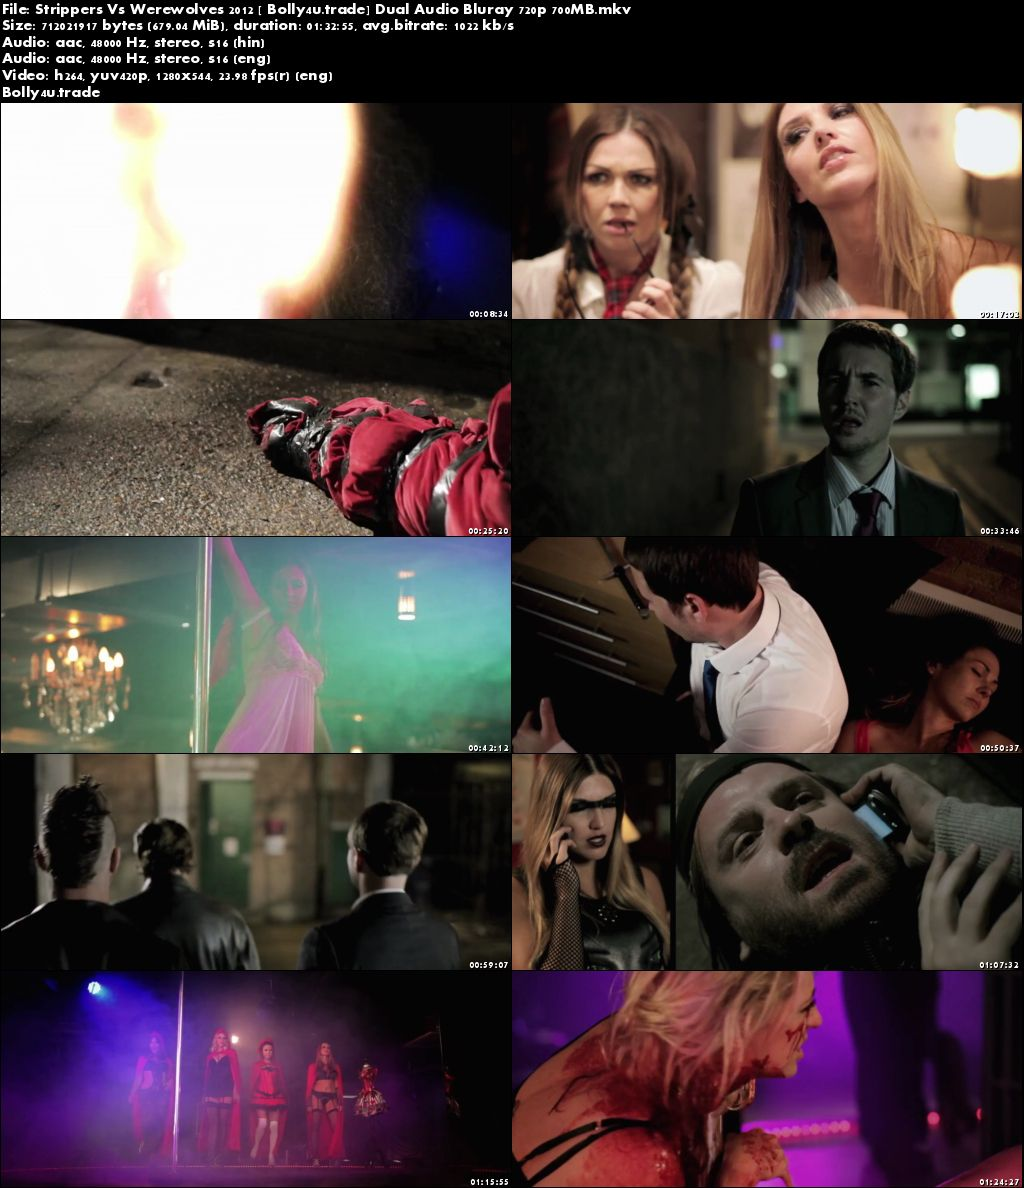 Strippers Vs Werewolves 2012 BluRay 700MB Hindi Dual Audio 720p Download